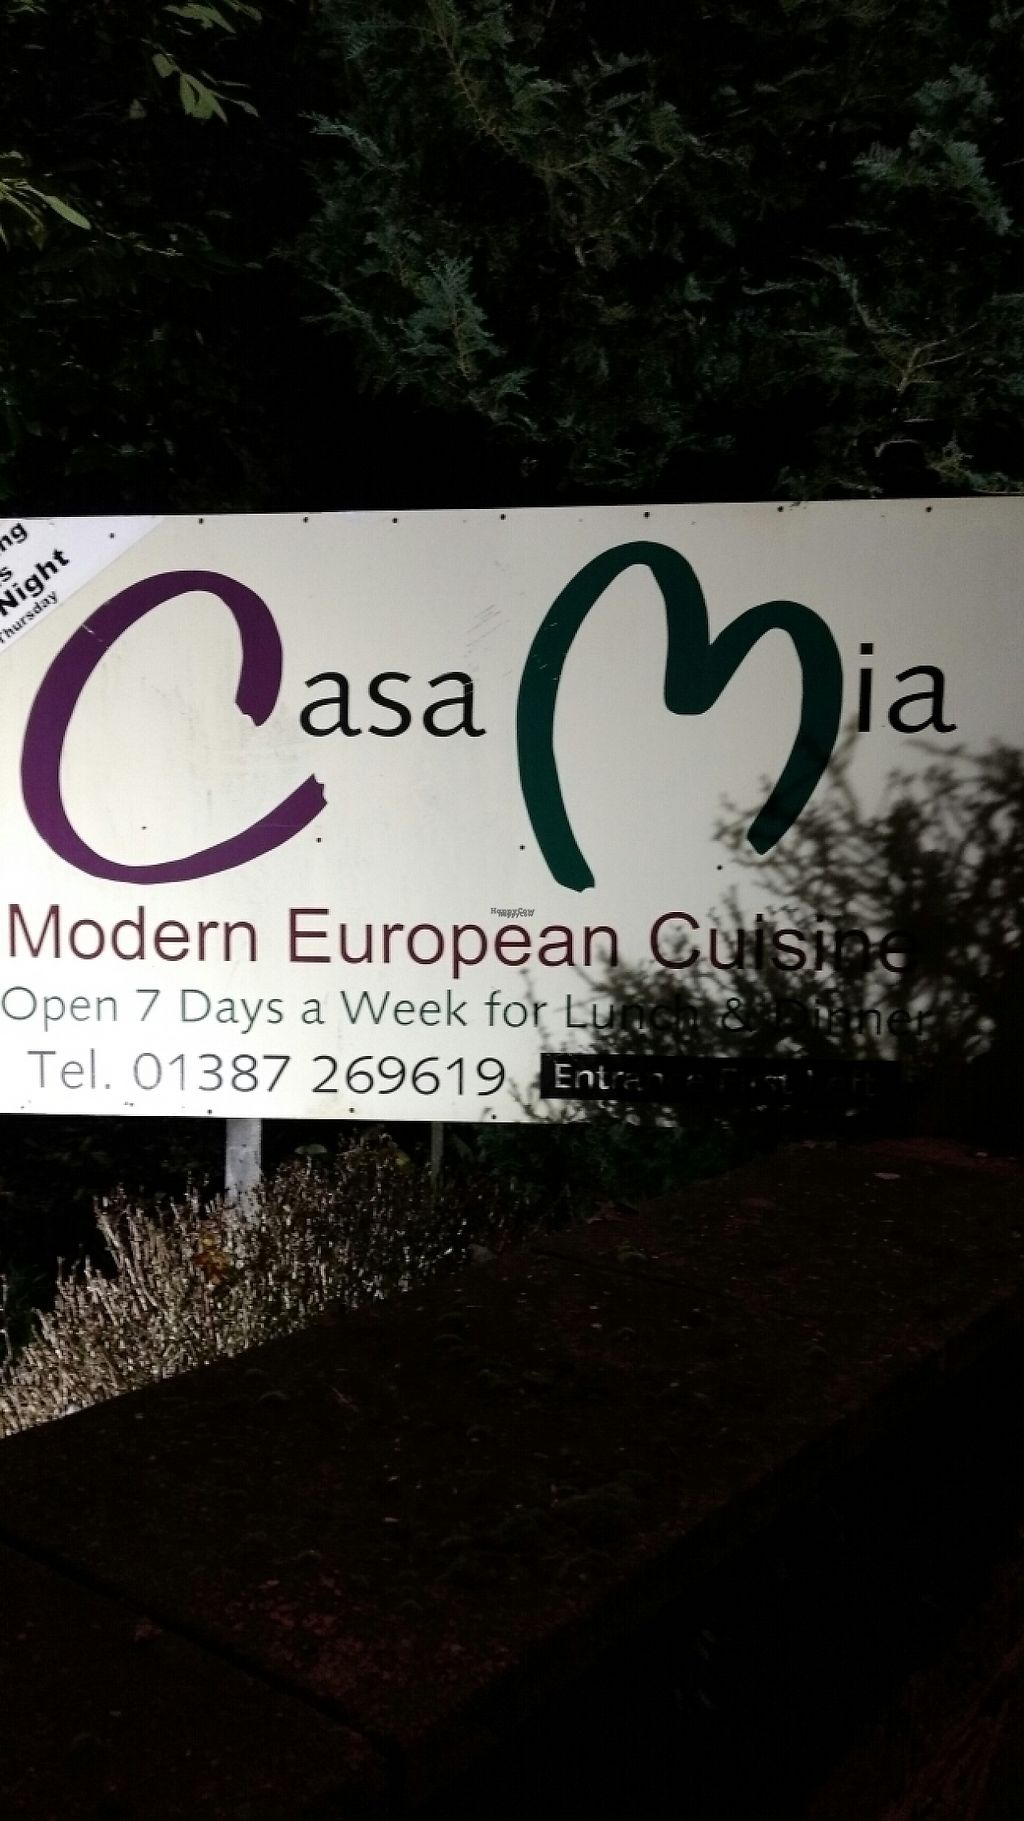 """Photo of Casa Mia  by <a href=""""/members/profile/craigmc"""">craigmc</a> <br/>hey ho <br/> March 5, 2017  - <a href='/contact/abuse/image/88103/233059'>Report</a>"""